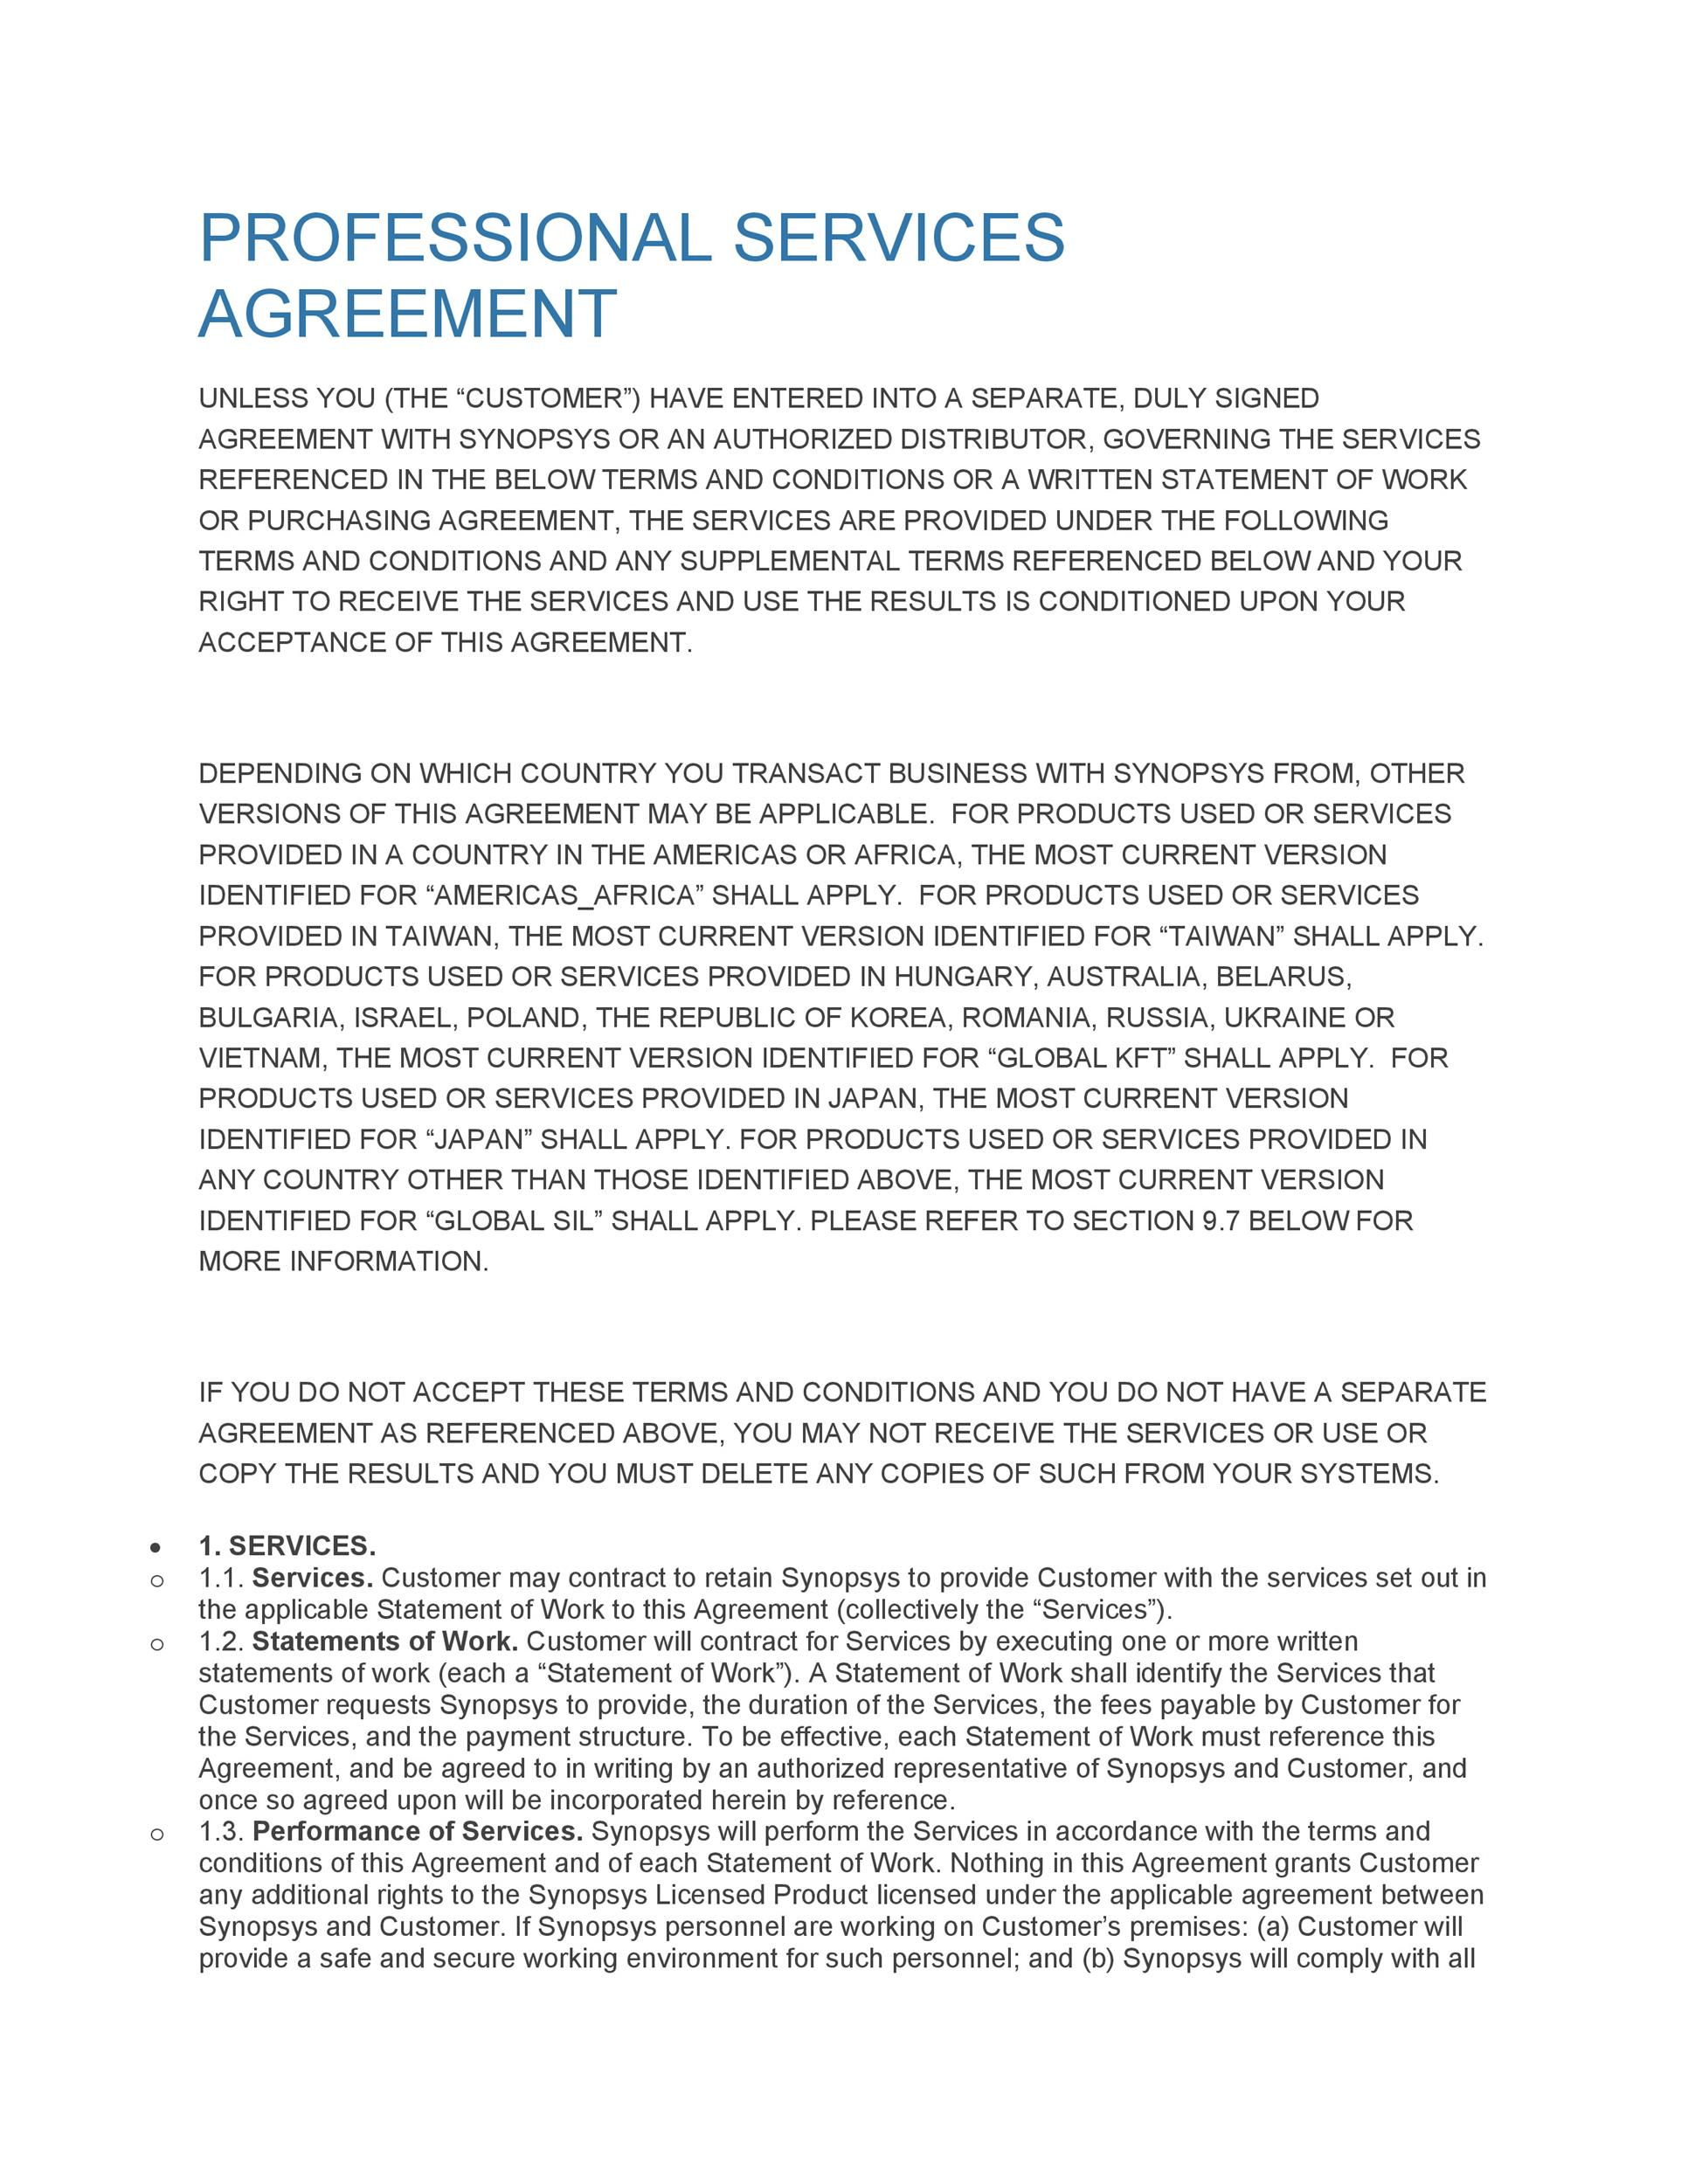 Contract Agreement Template u2013 11+ Free Word, Pdf DocumentService - business service agreement